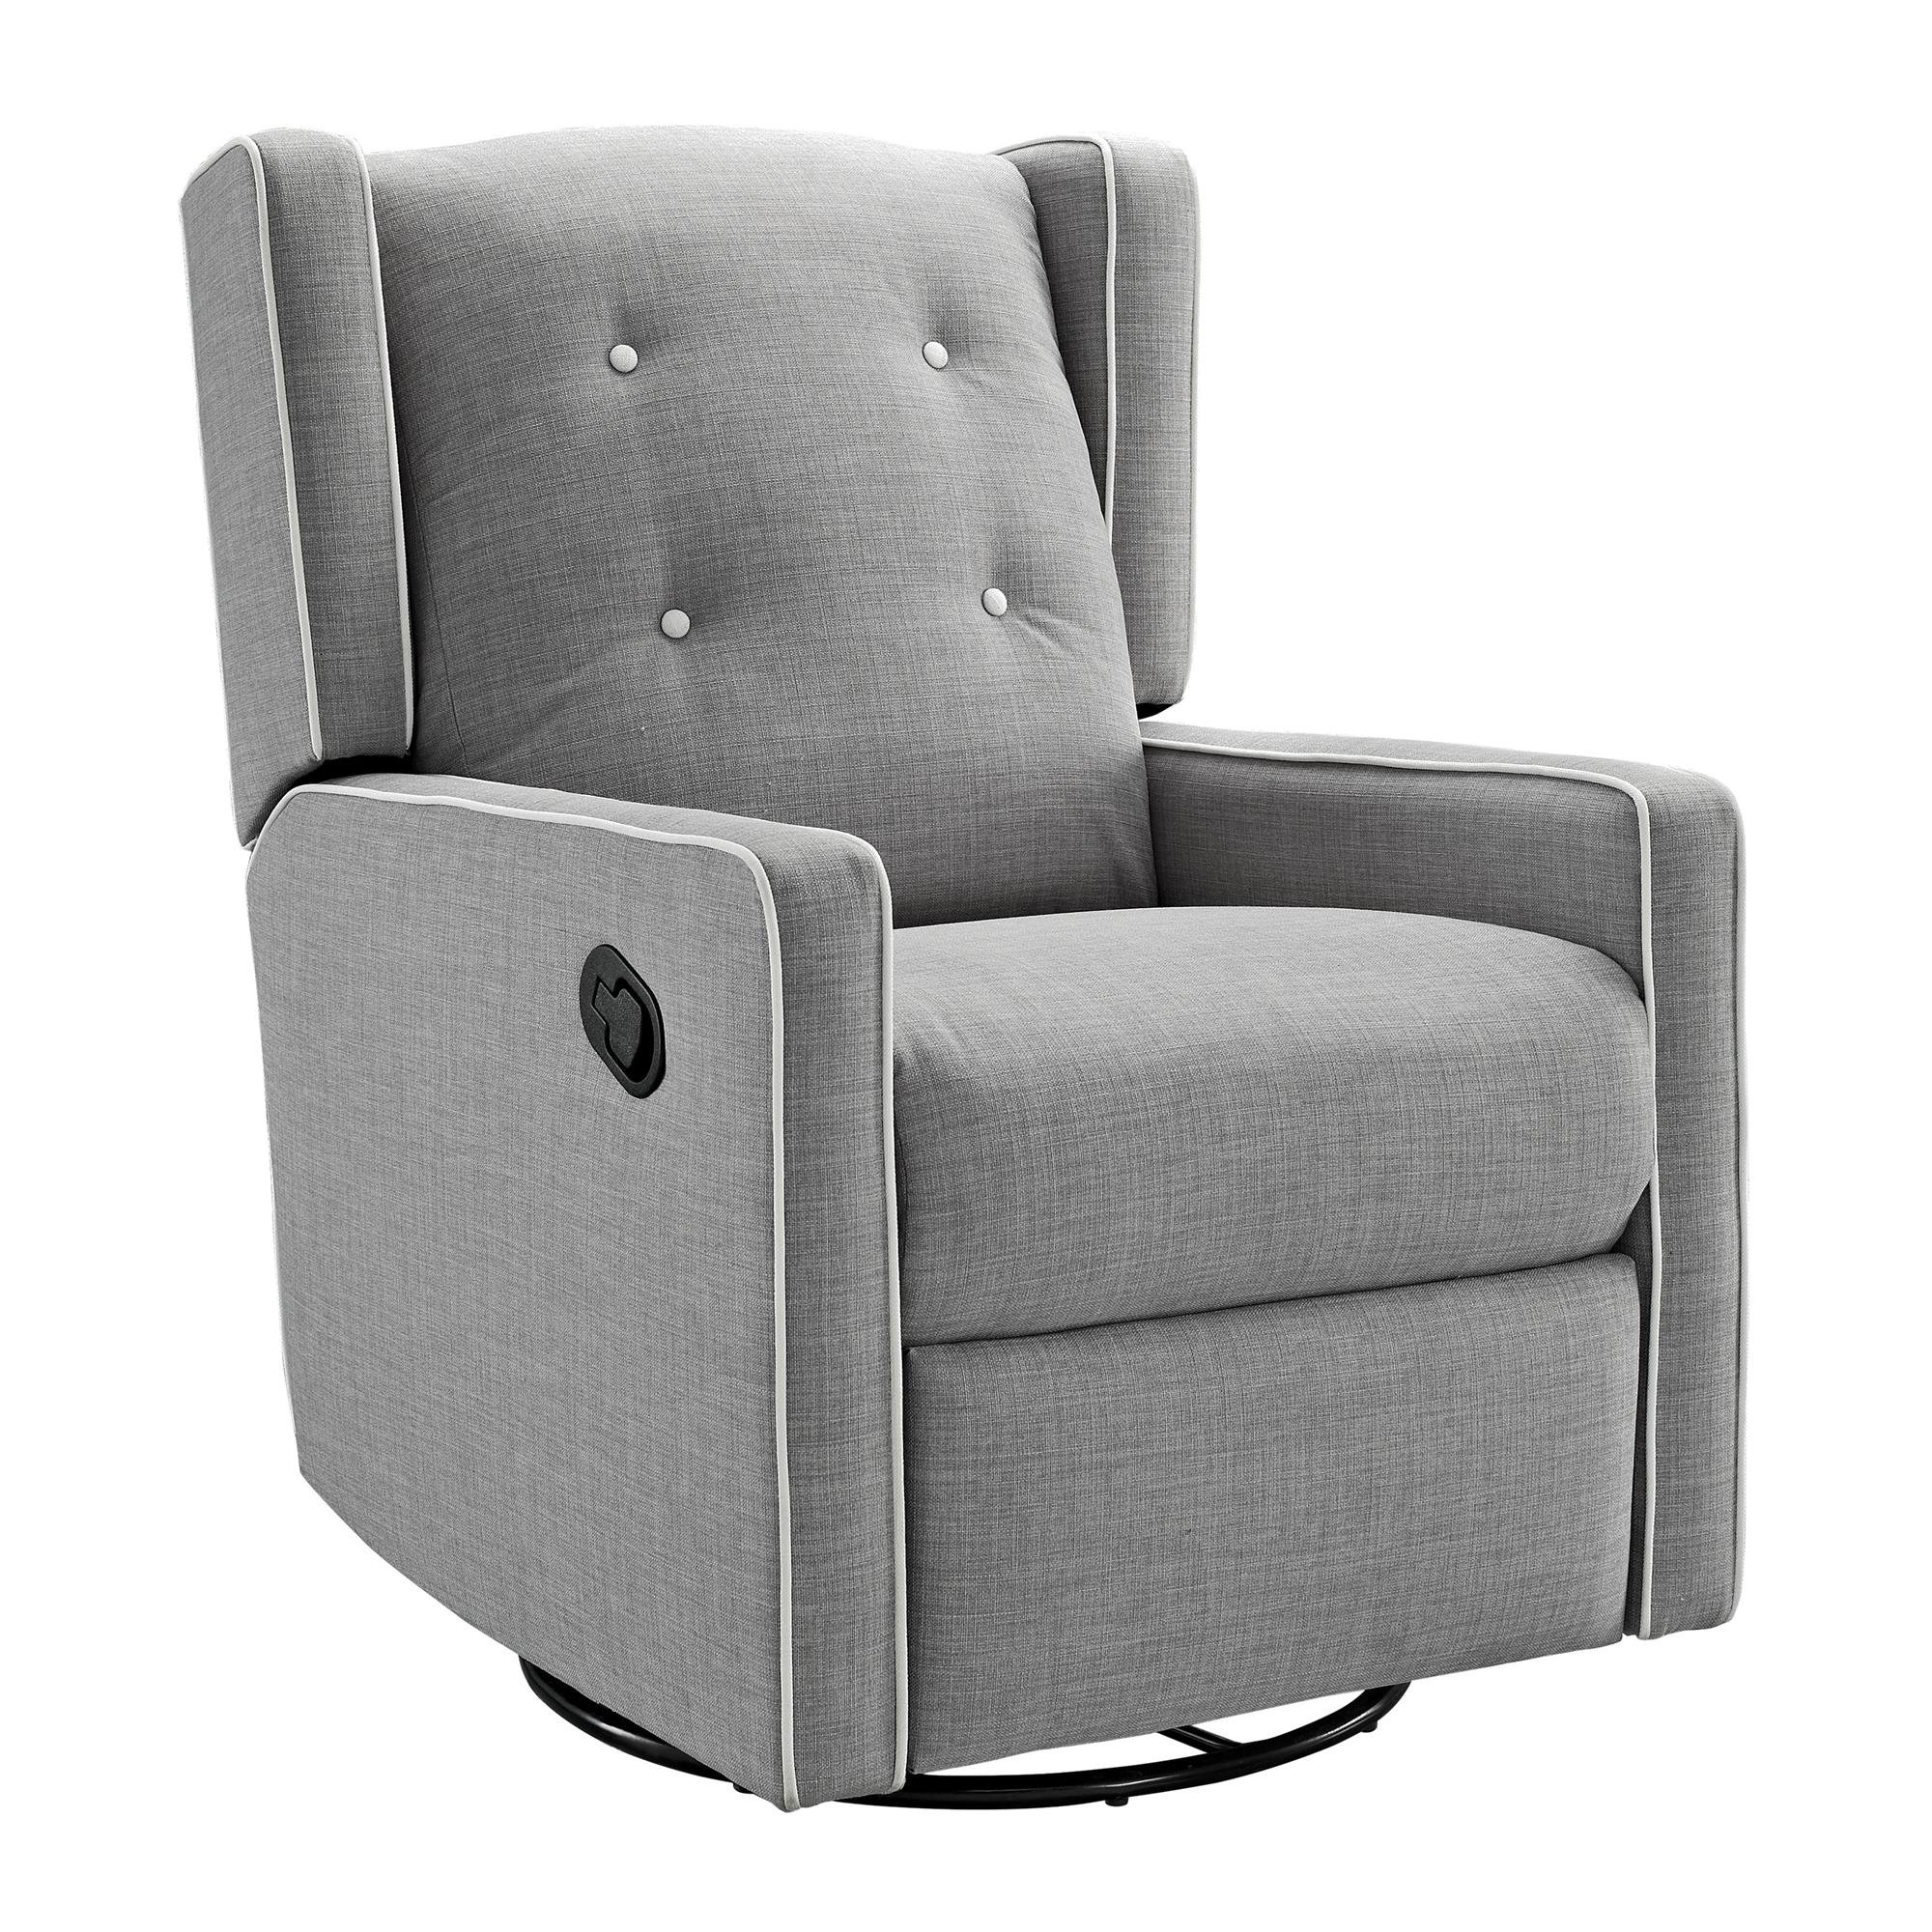 Viv + Rae | Allmodern With Regard To Circuit Swivel Accent Chairs (View 18 of 25)